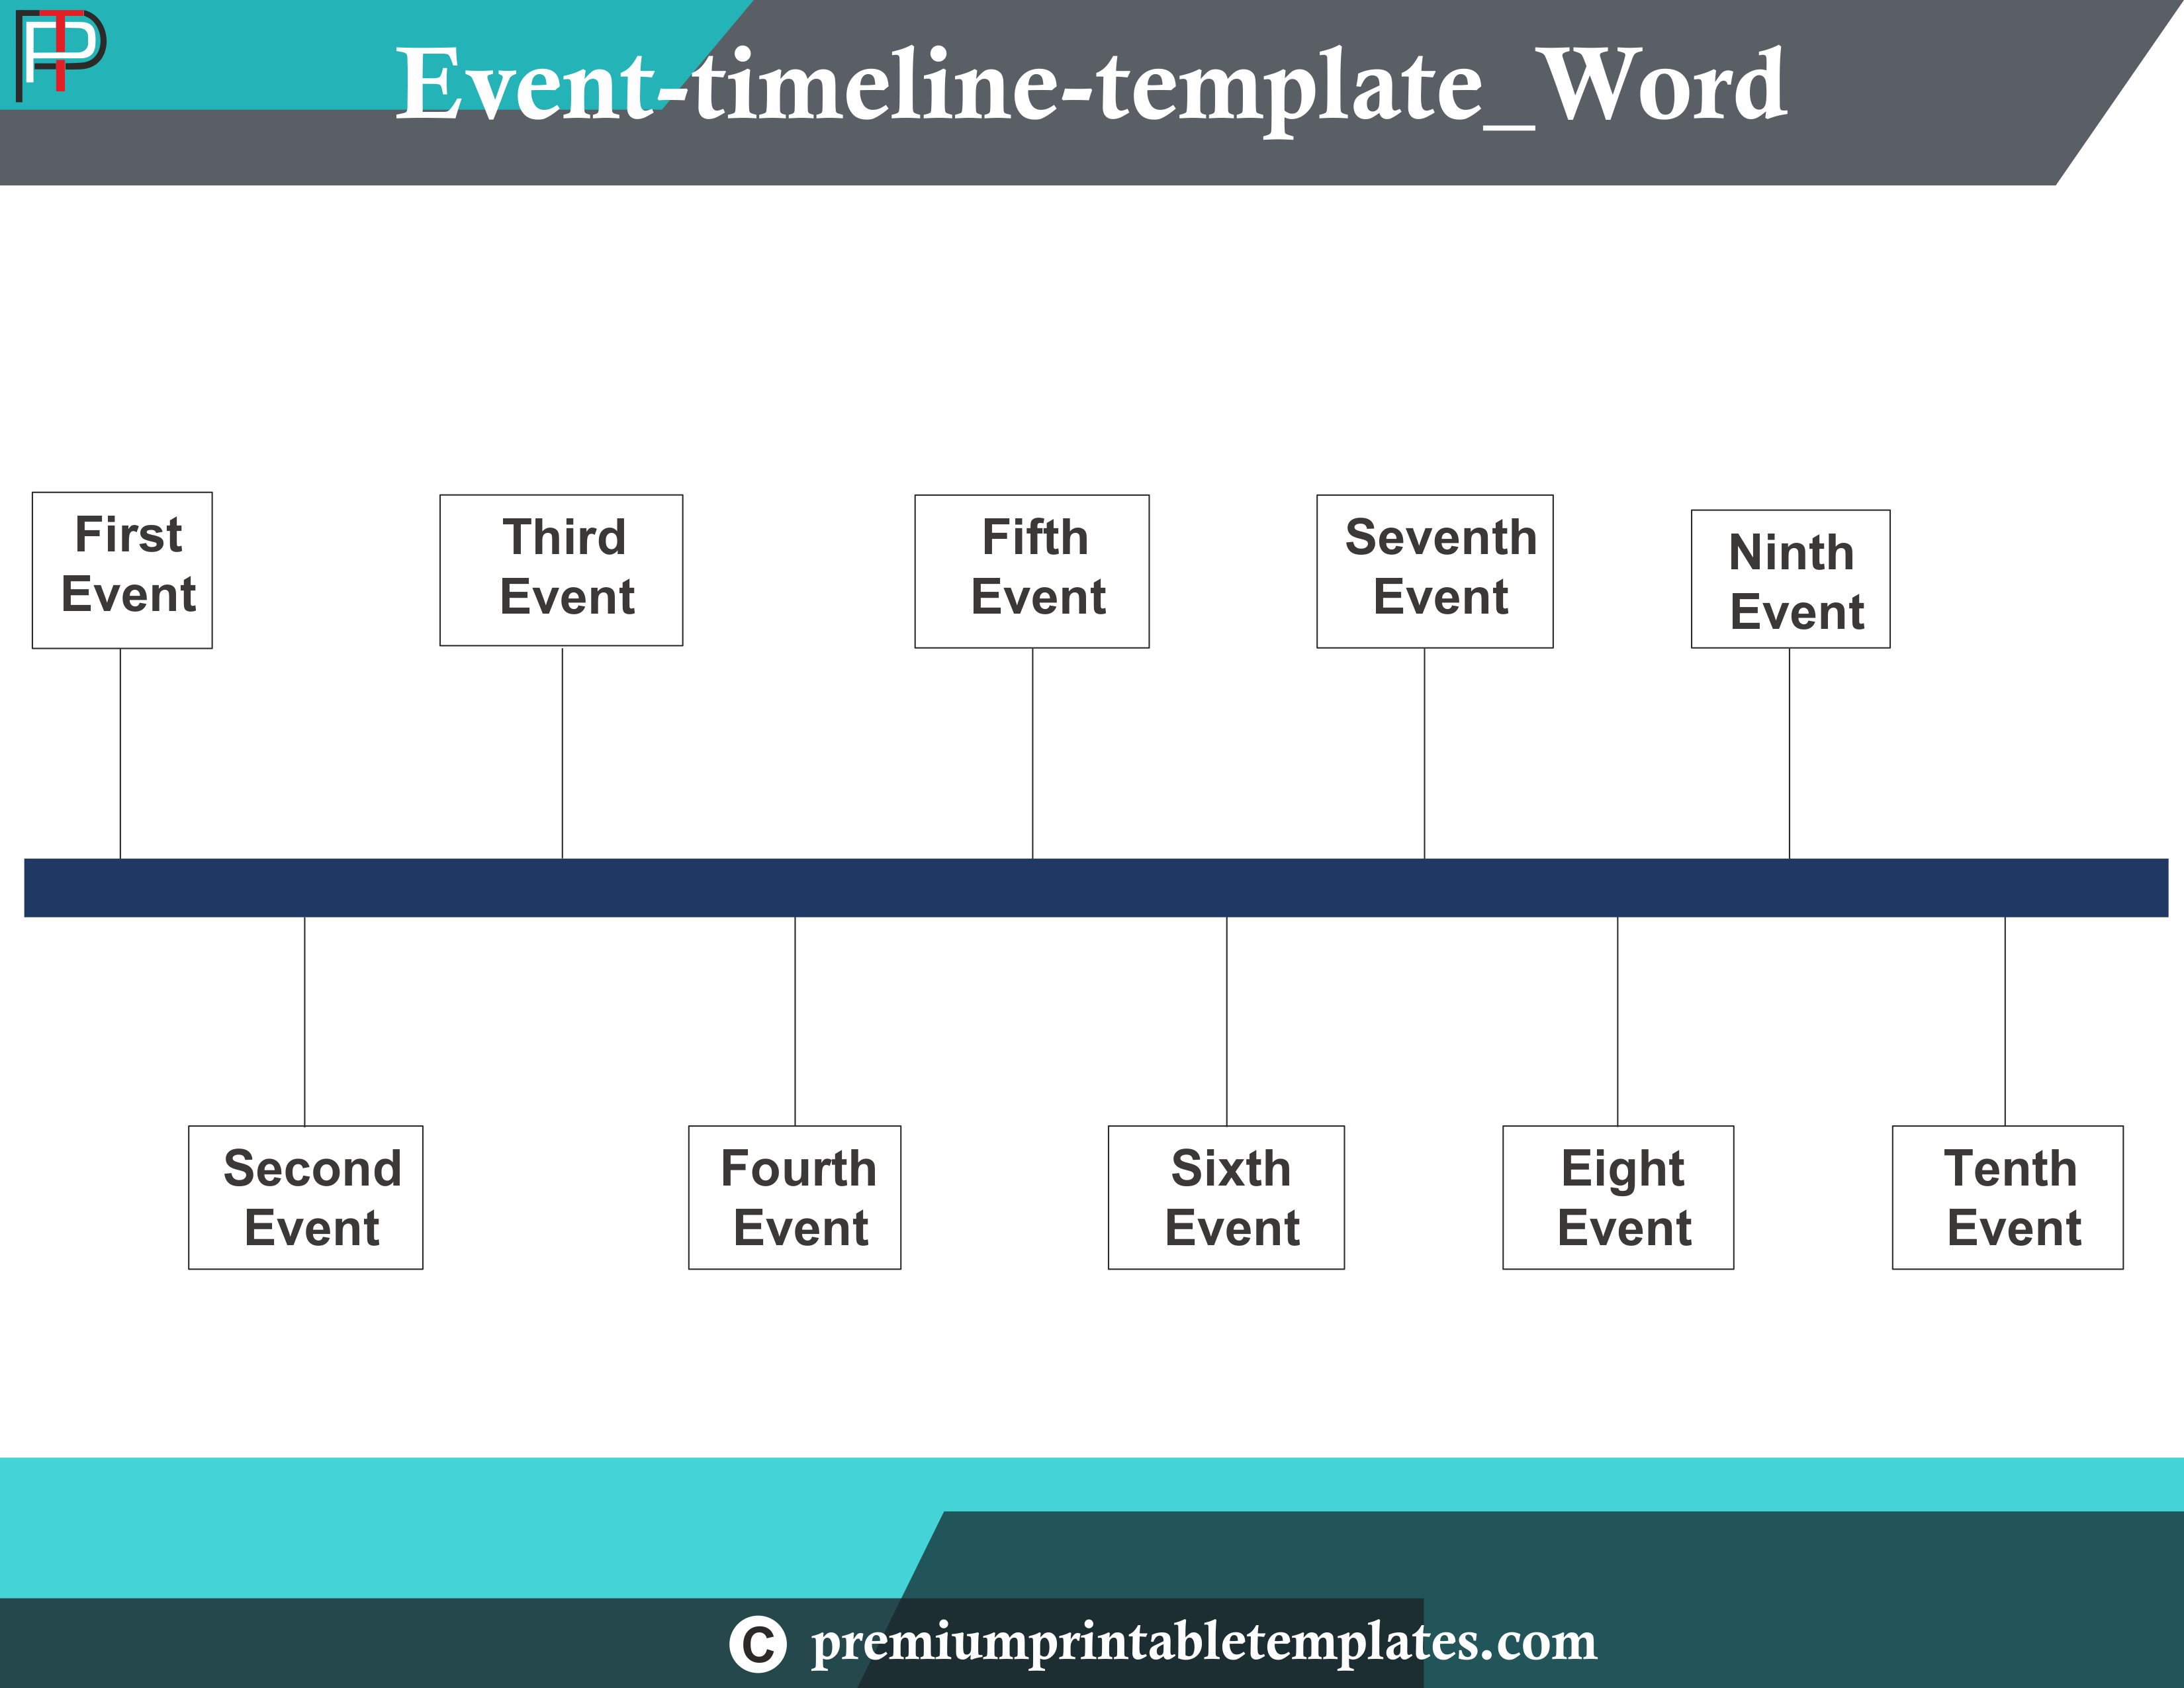 Event-timeline-template_Word